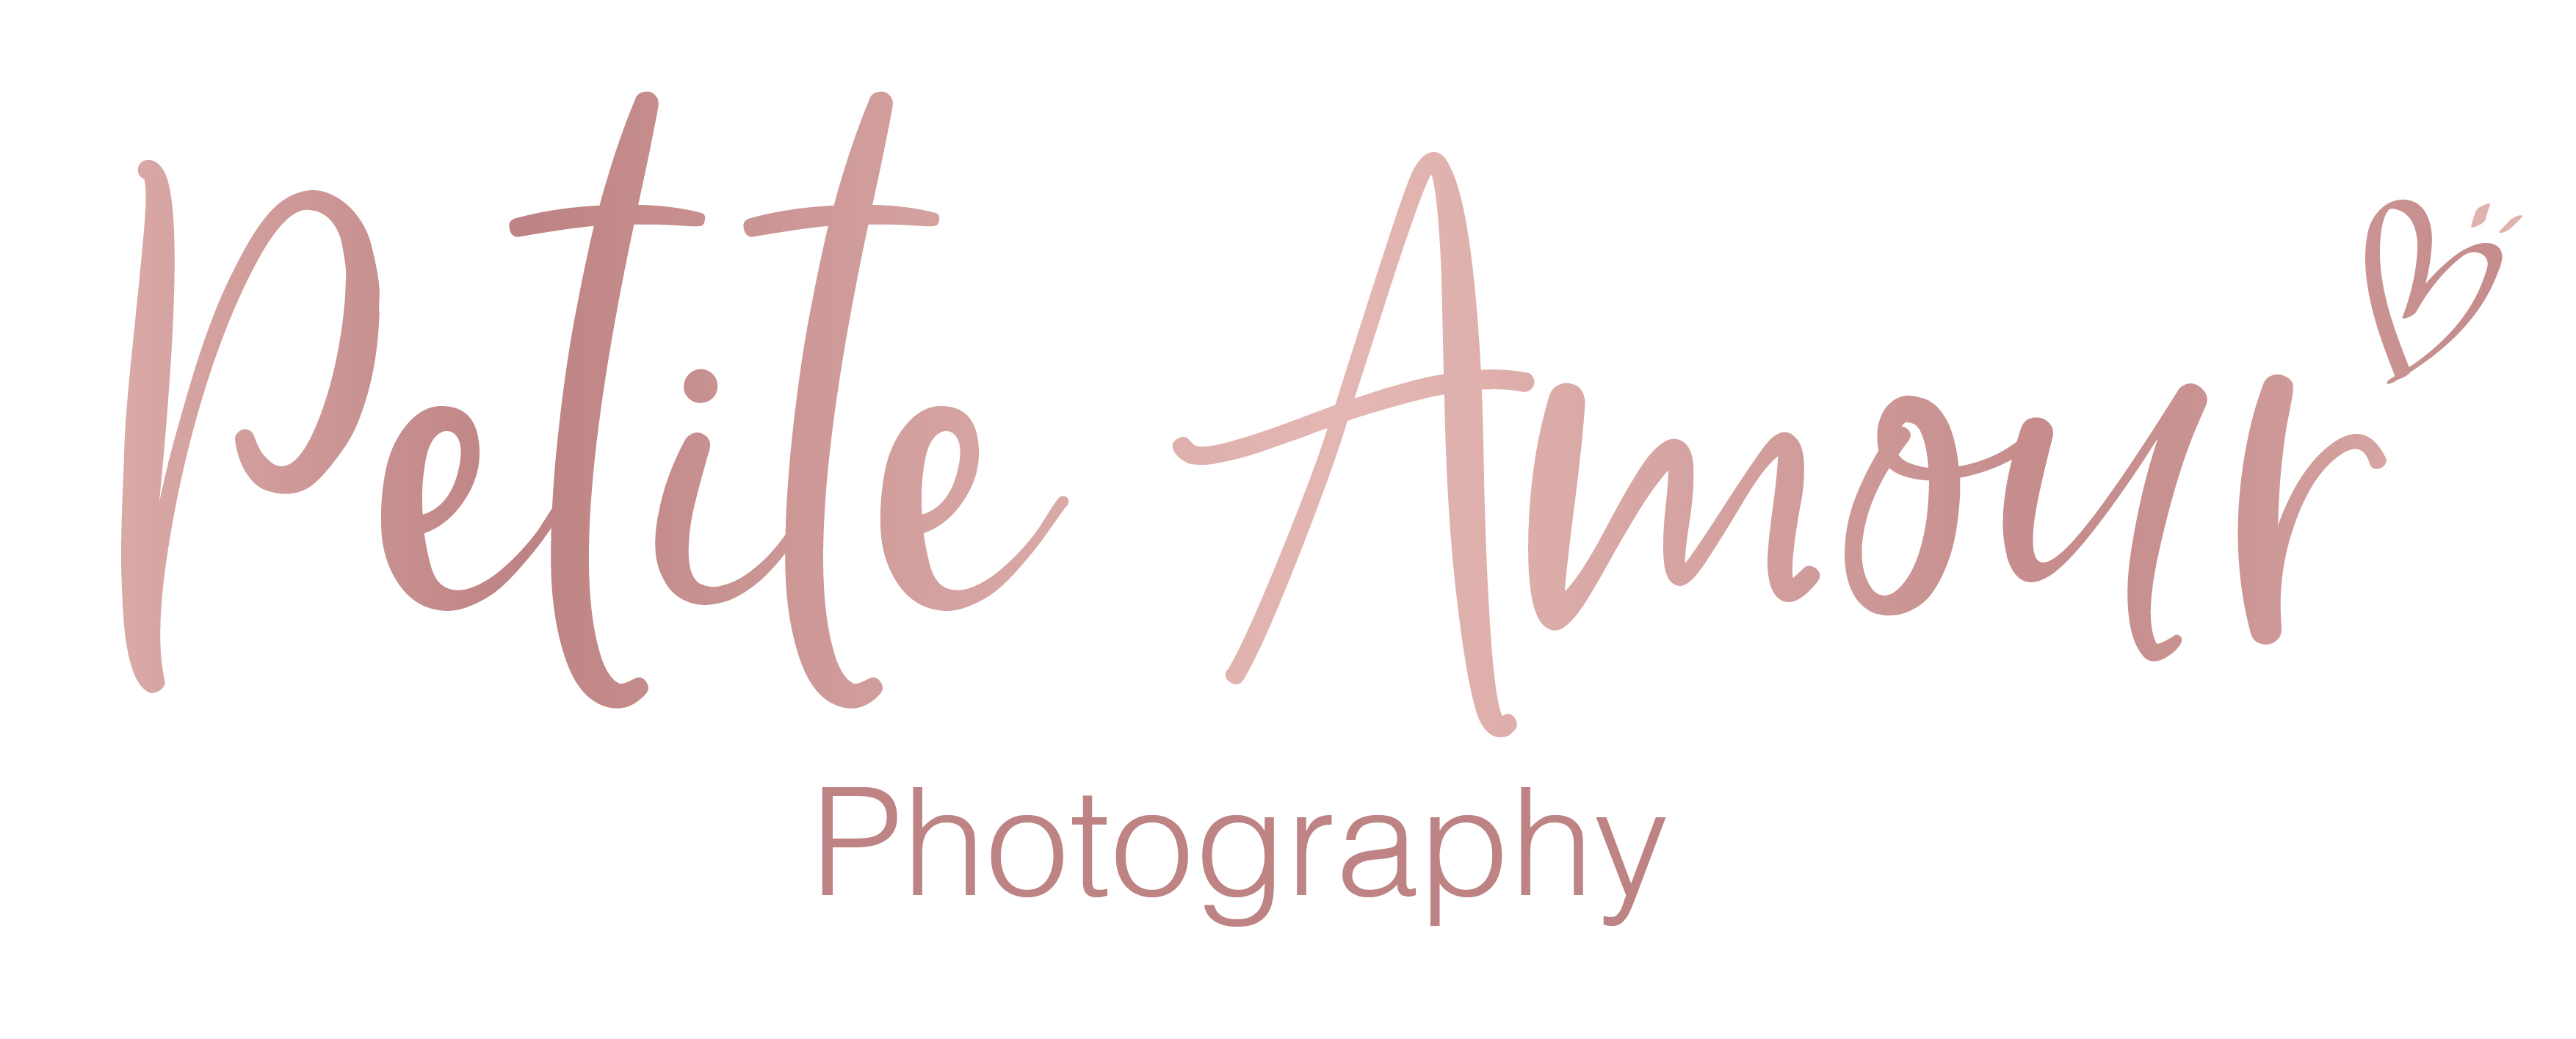 Petite Amour Photography's logo